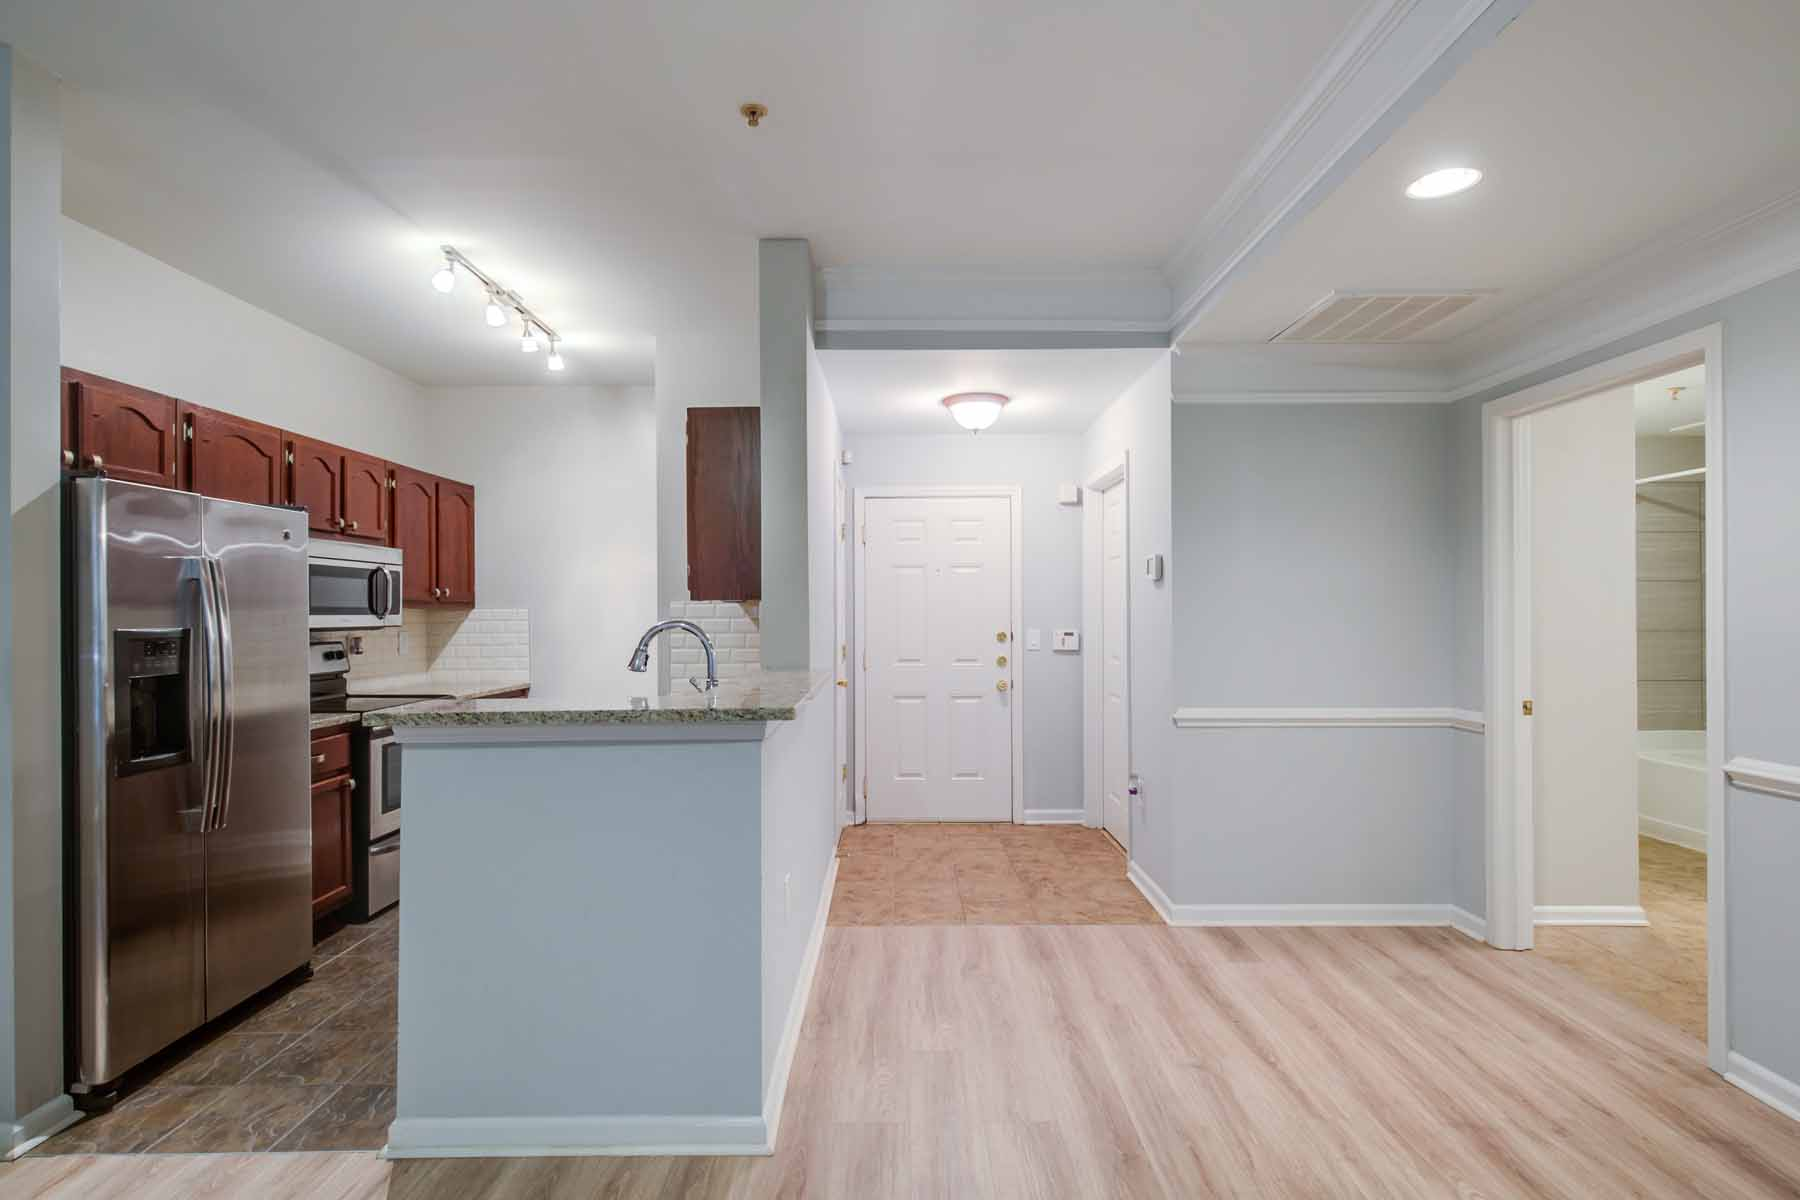 Condominium for Sale at Lovely Renovated One Bedroom Near Lenox Mall! 2700 Pine Tree Road NE #2015 Atlanta, Georgia 30324 United States